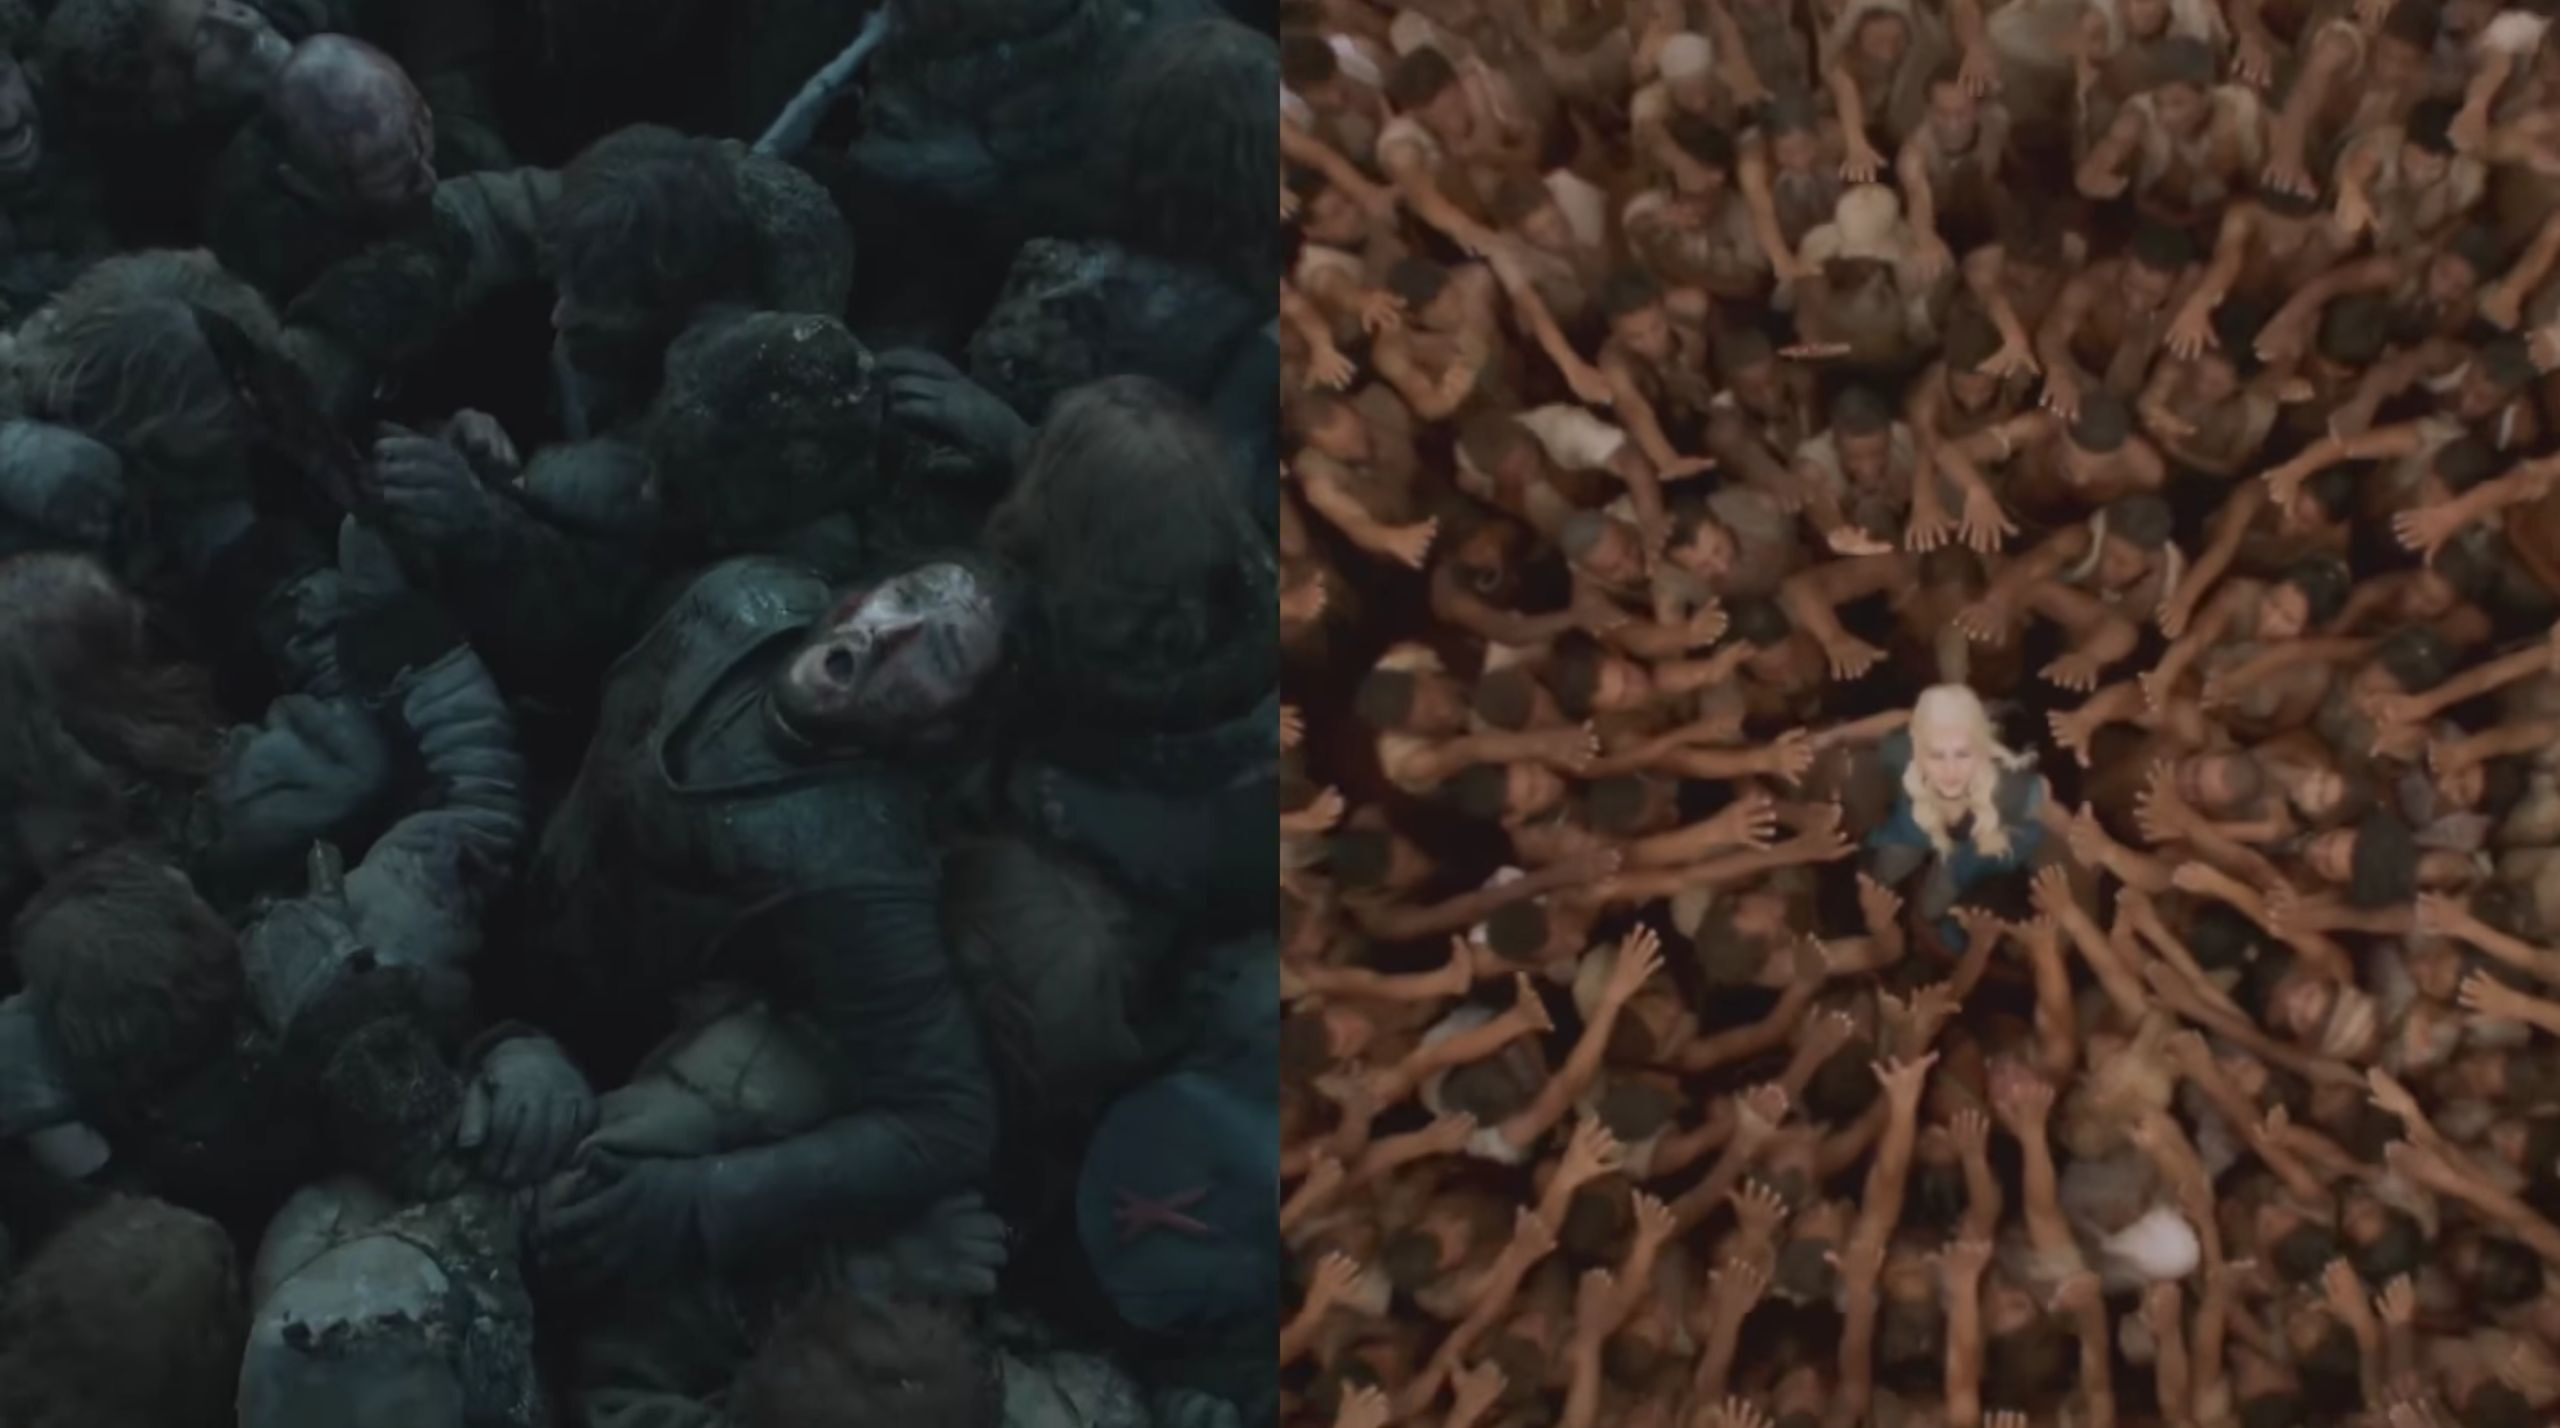 Awesome video highlights the parallels between Game of Thrones Season 6 and past seasons